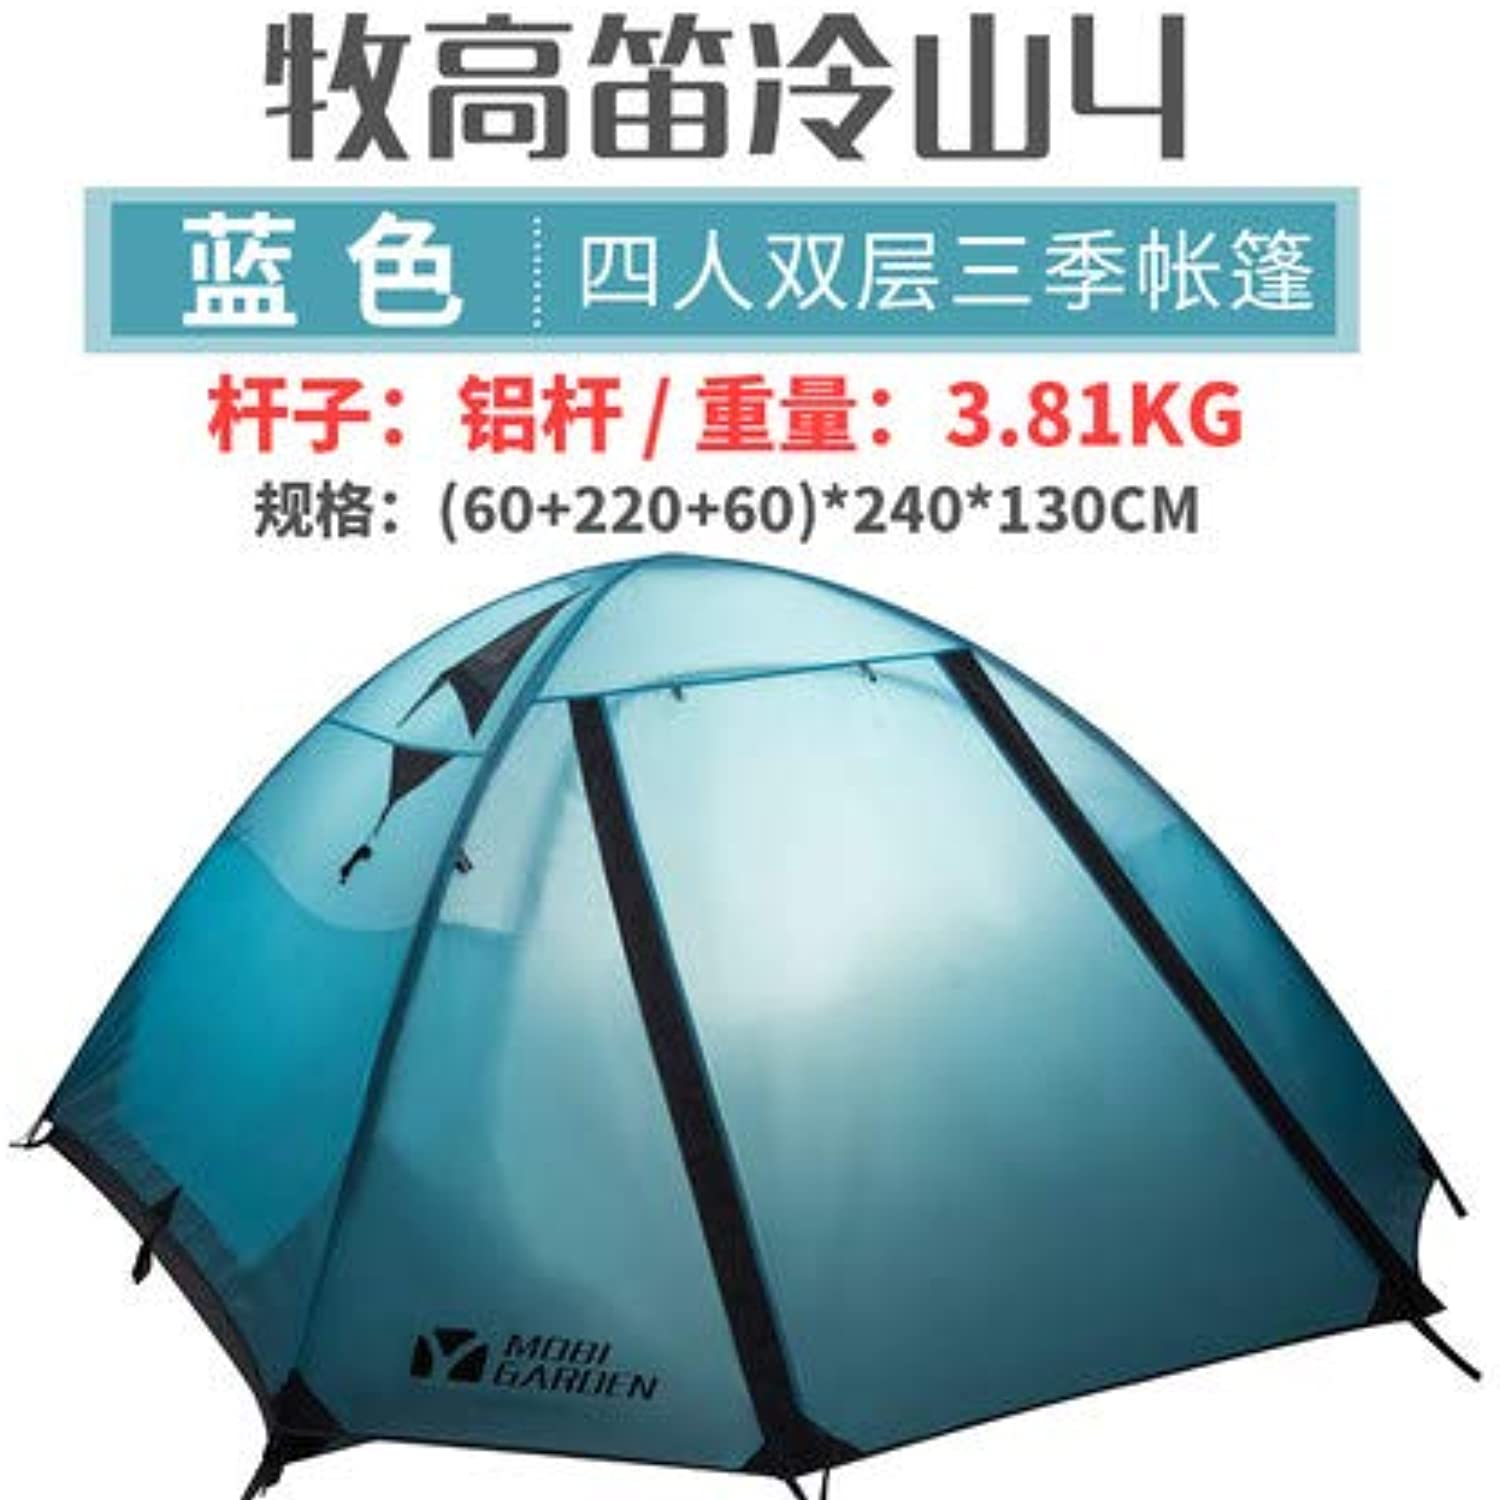 Mobi Outdoor Camping Tent Mountaineering Windproof Storm Pole Double Cold Mountain Tent 2air